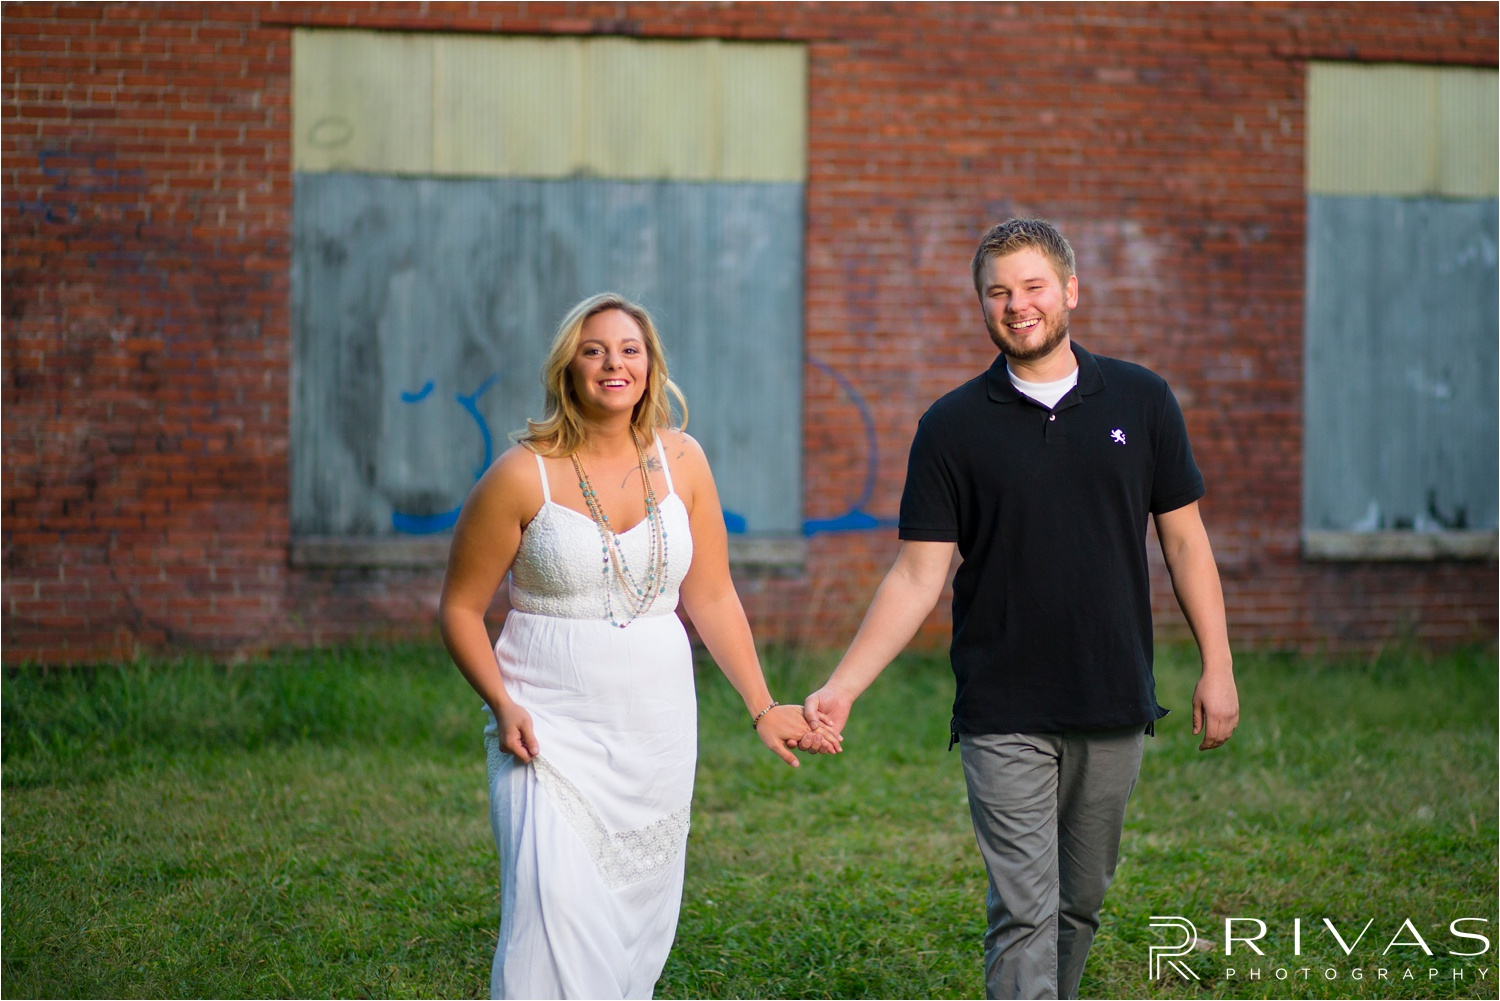 crossroads engagement session